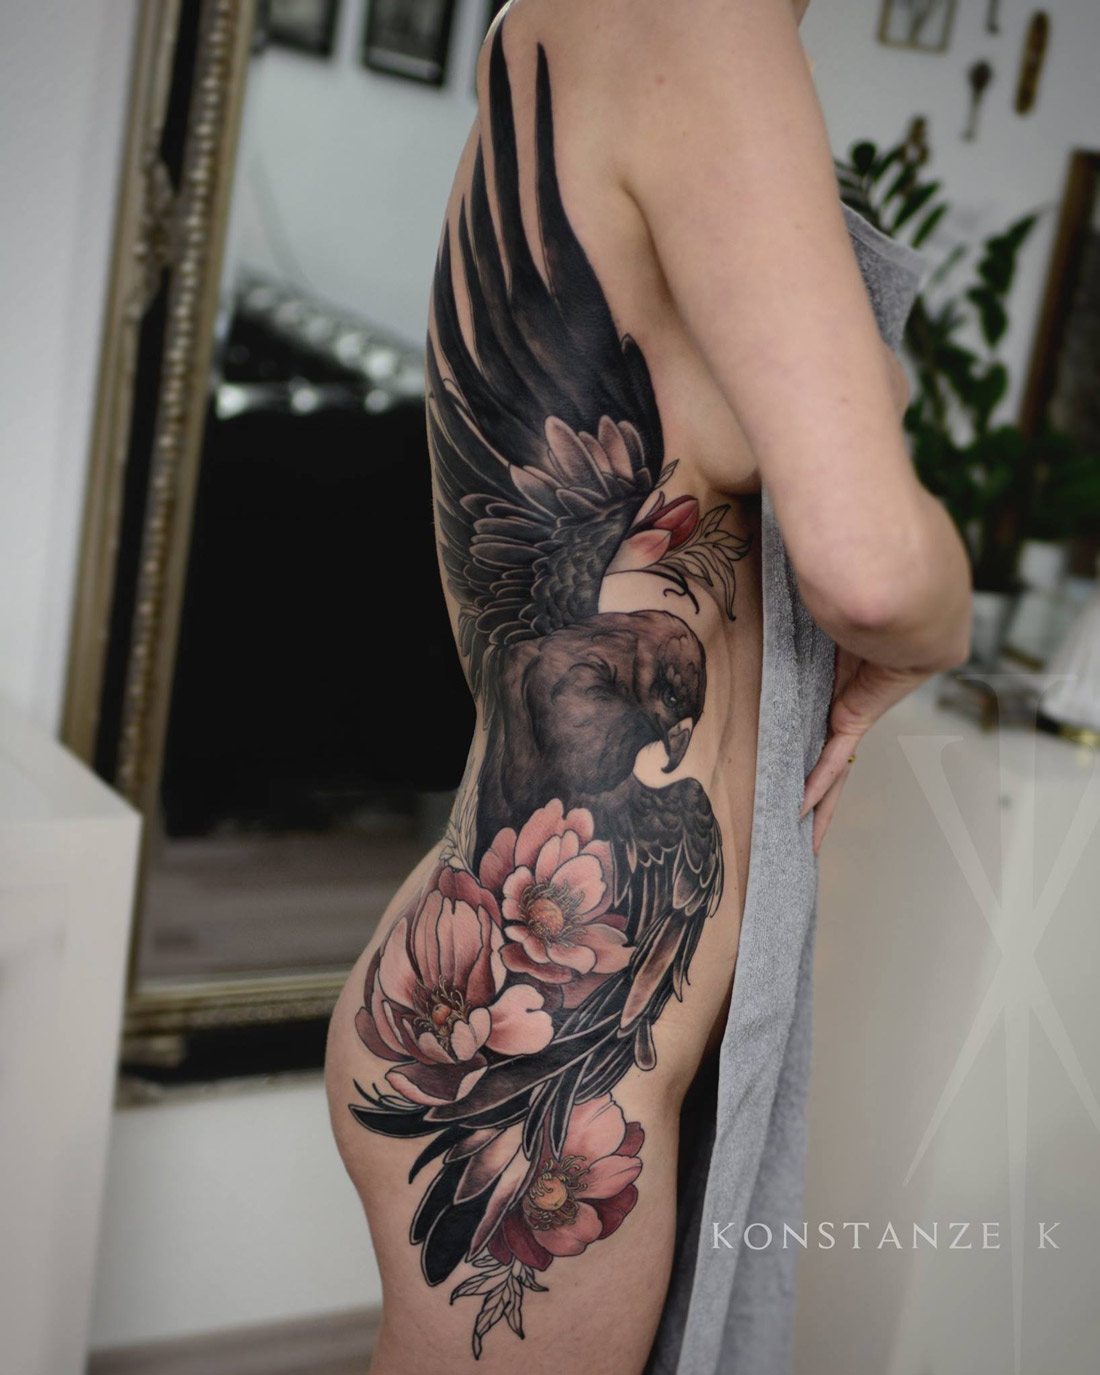 Golden eagle & peonies side tattoo